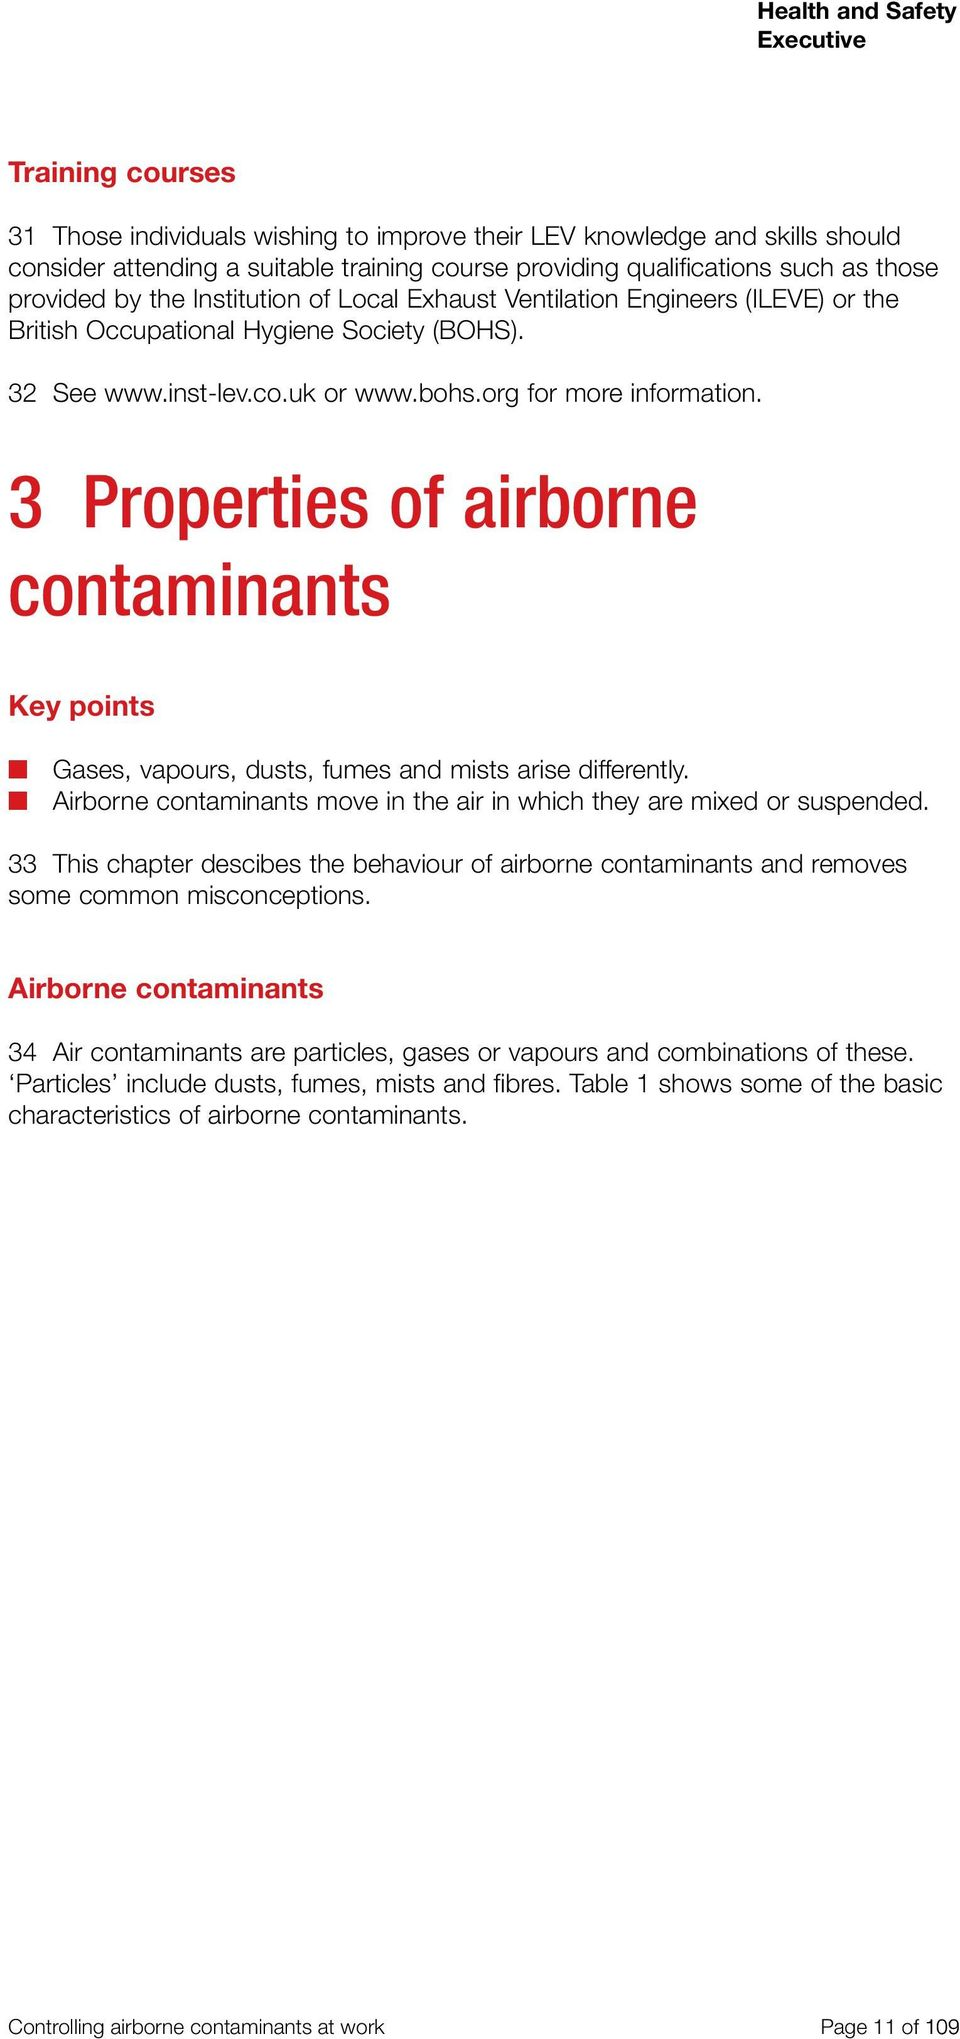 3 Properties of airborne contaminants Key points Gases, vapours, dusts, fumes and mists arise differently. Airborne contaminants move in the air in which they are mixed or suspended.